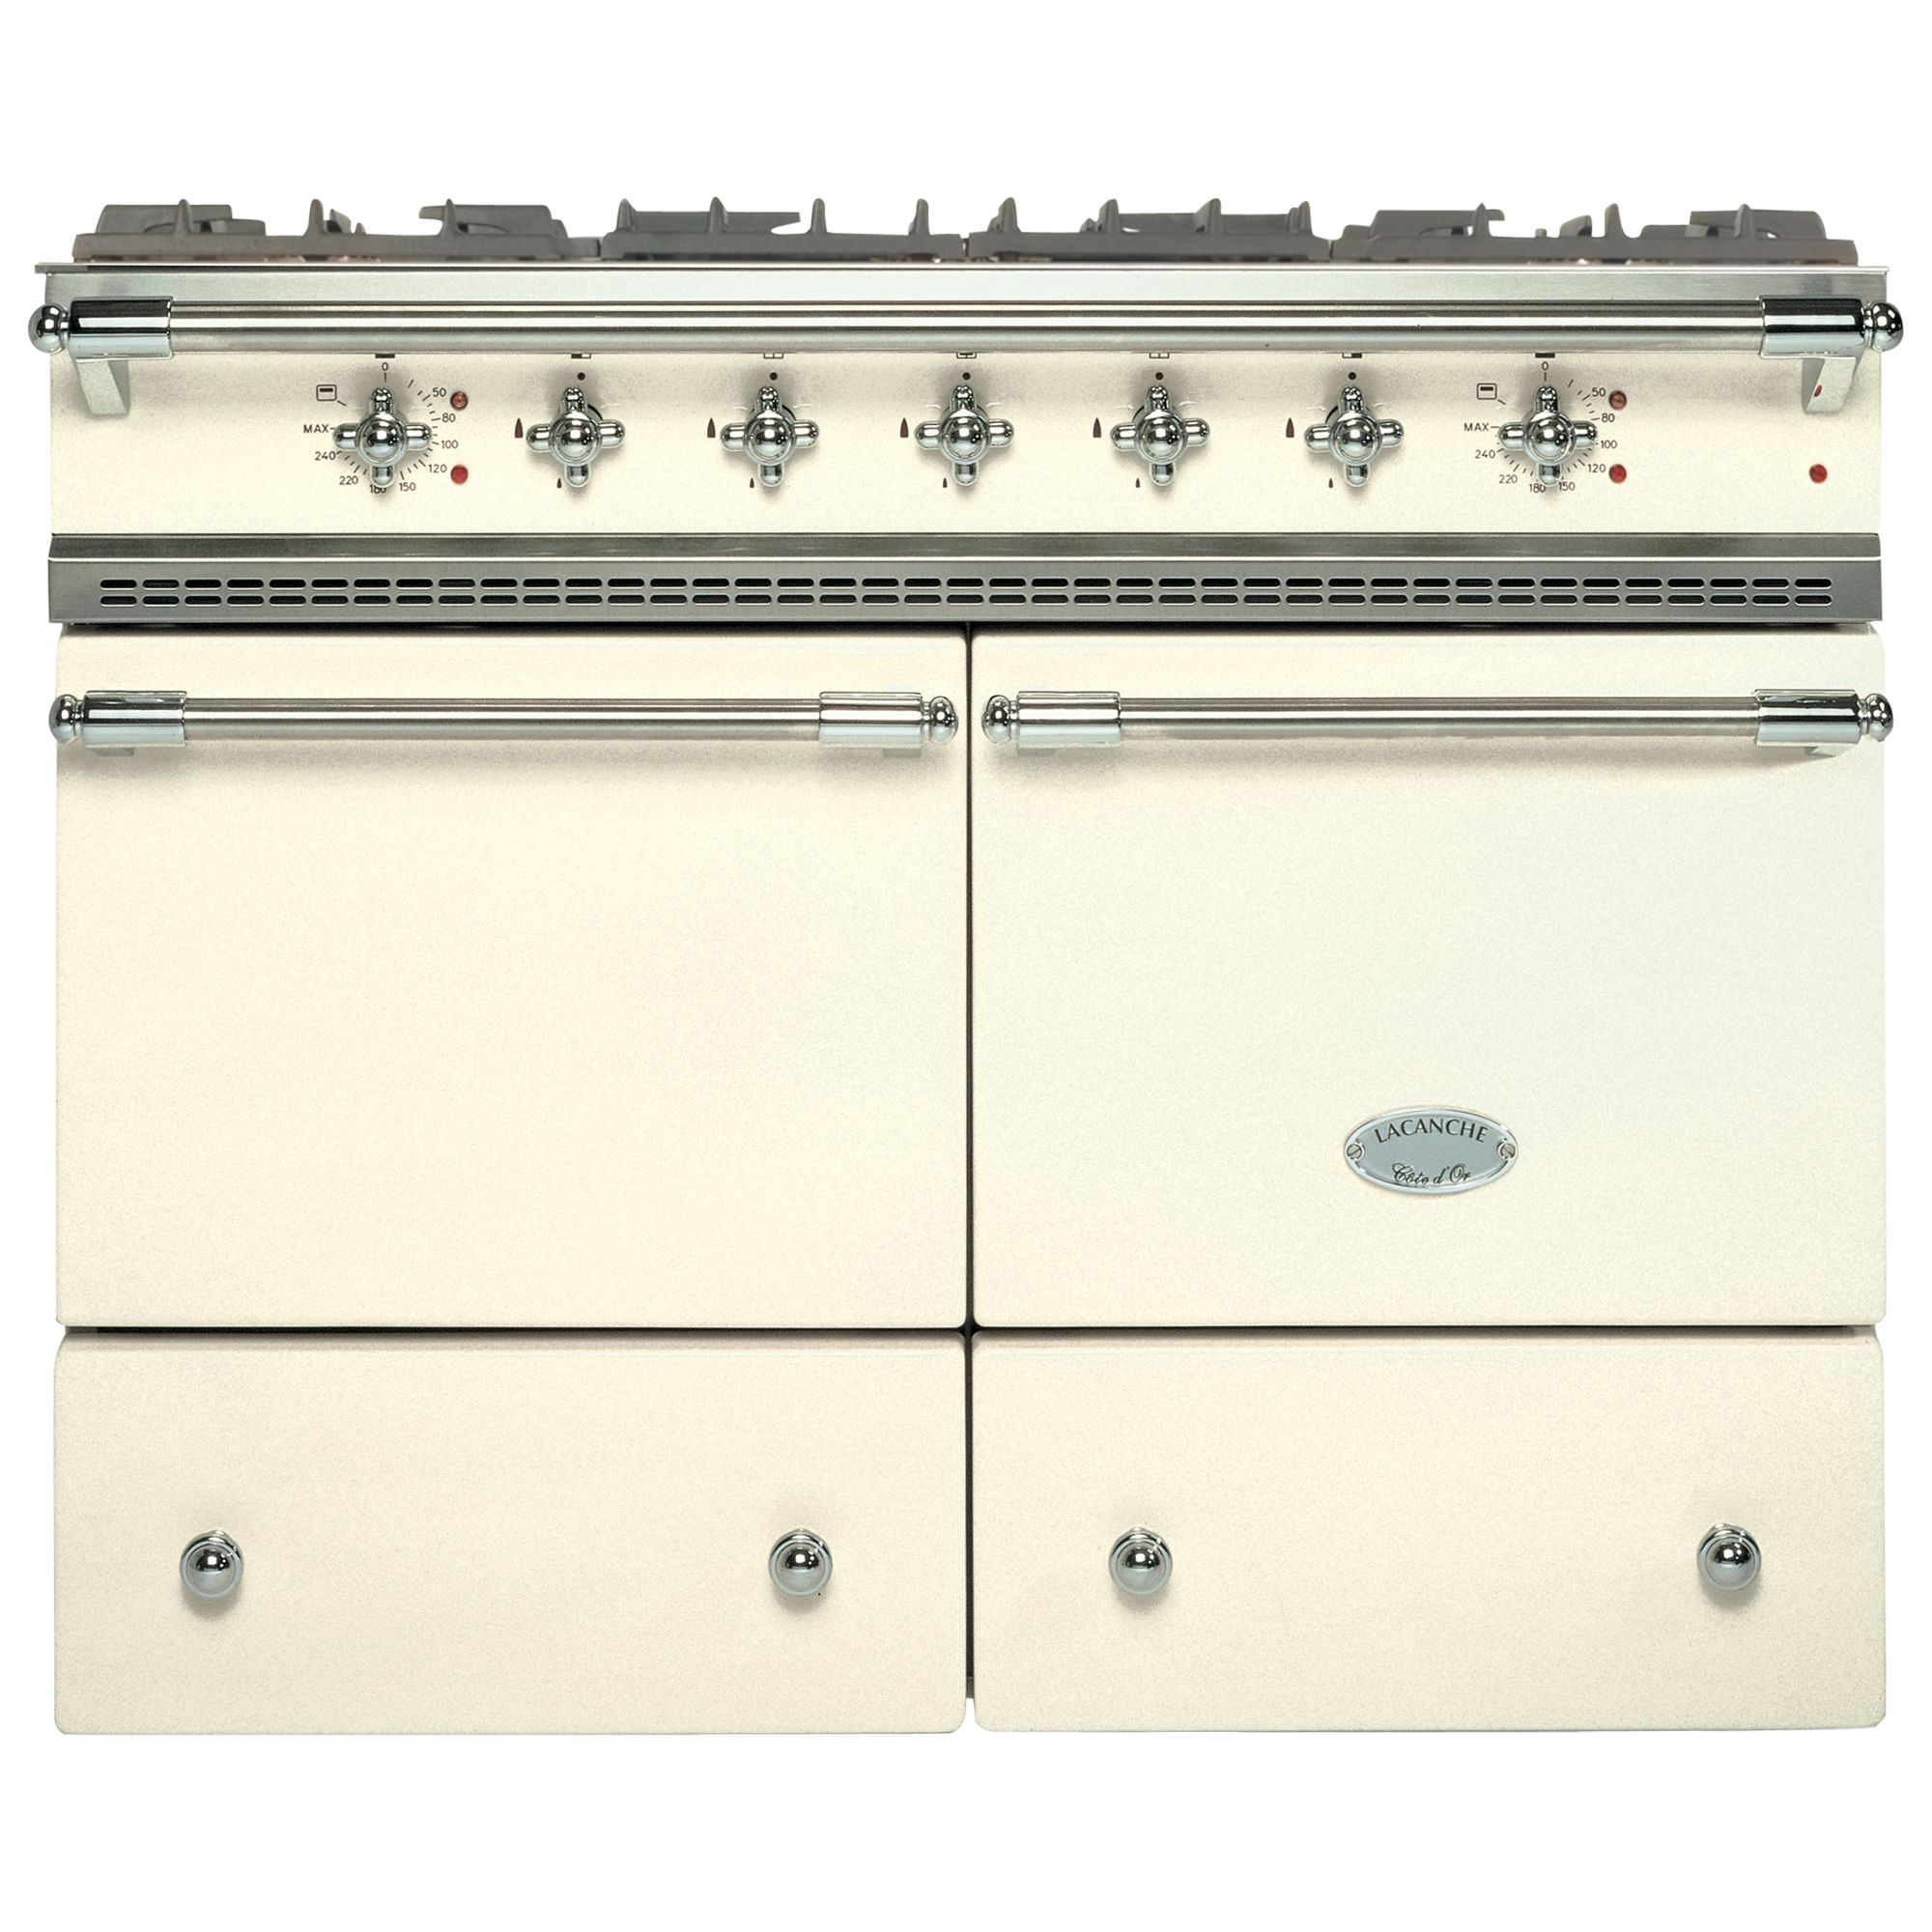 Lacanche Cluny LG1052GCT Dual Fuel Range Cooker, Ivory / Chrome Trim at John Lewis